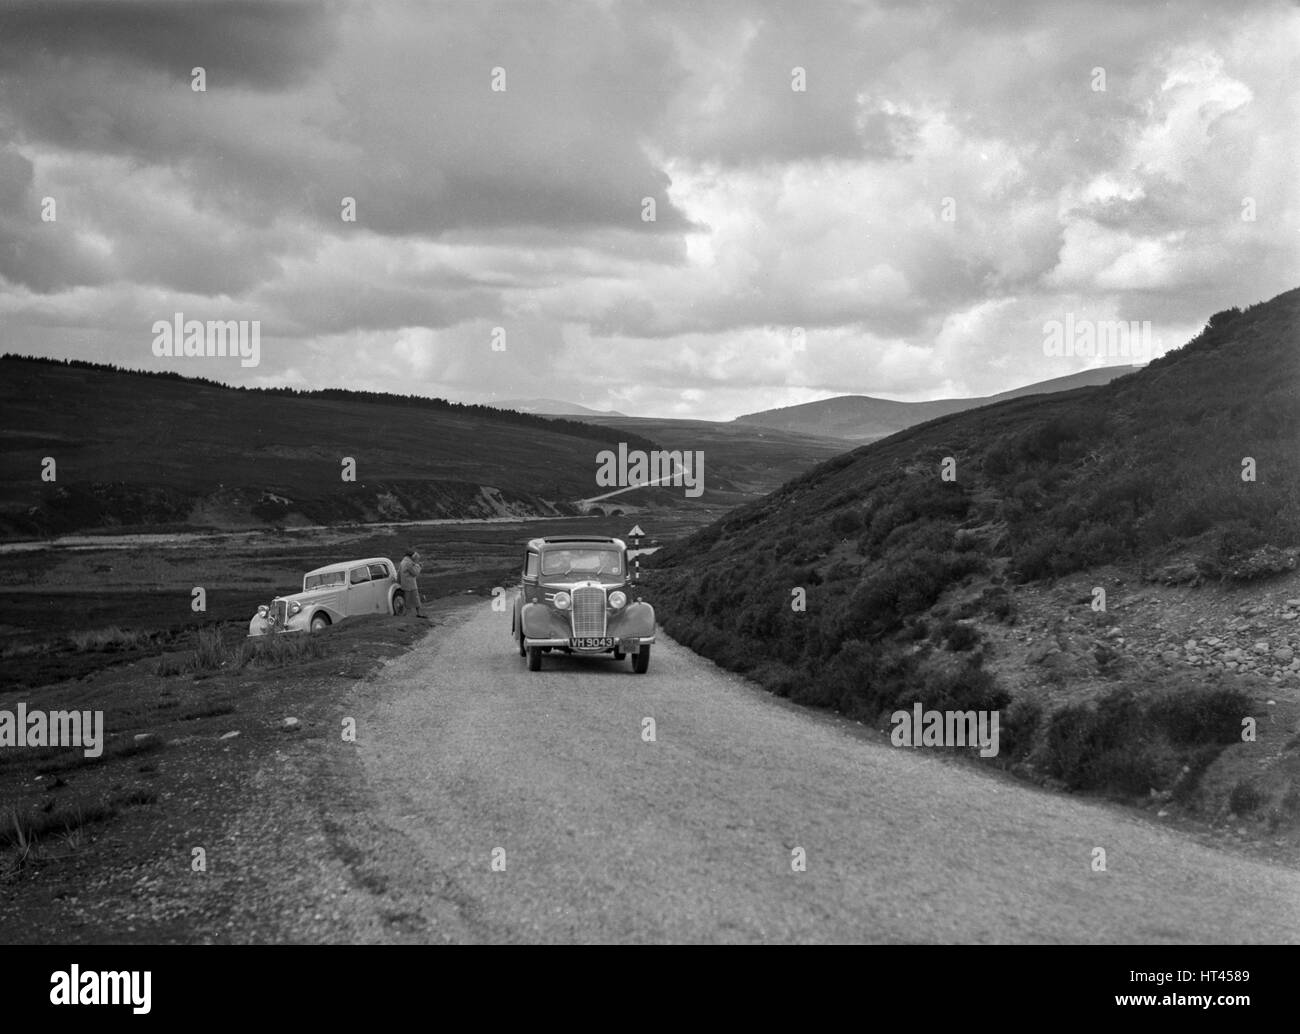 Vauxhall of Dr AT Halton competing in the RSAC Scottish Rally, 1936. Artist: Bill Brunell. - Stock Image